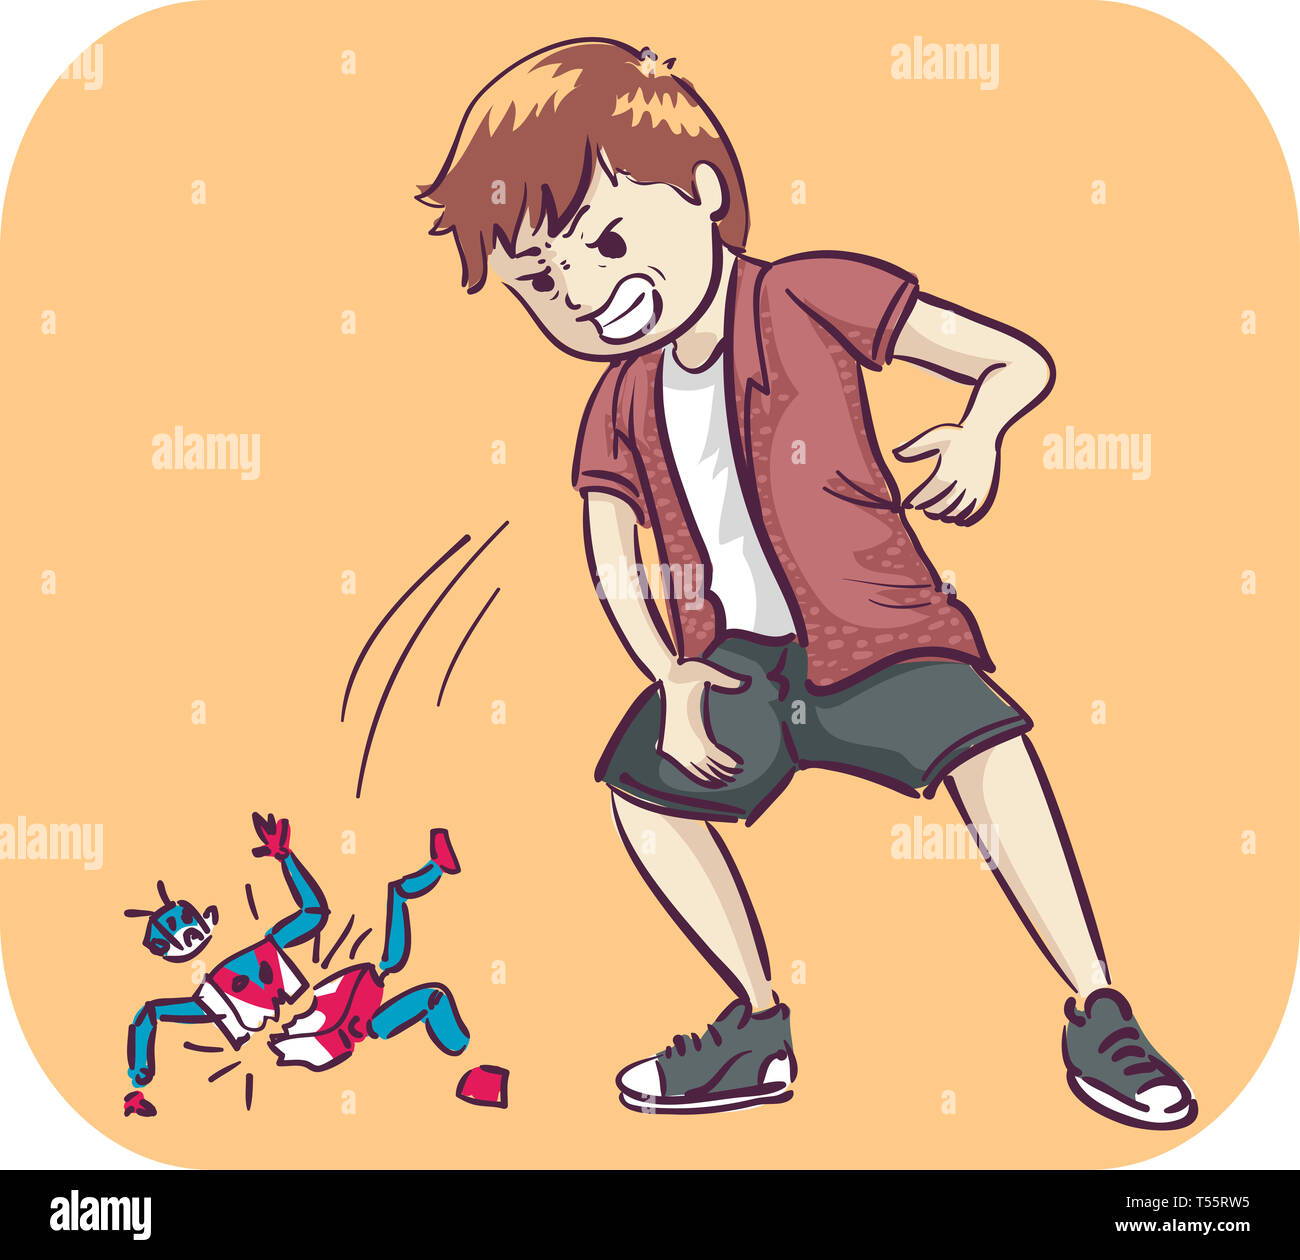 Illustration Of A Kid Boy Throwing A Toy Hard On The Floor Breaking It In An Emotional And Angry Outburst Stock Photo Alamy